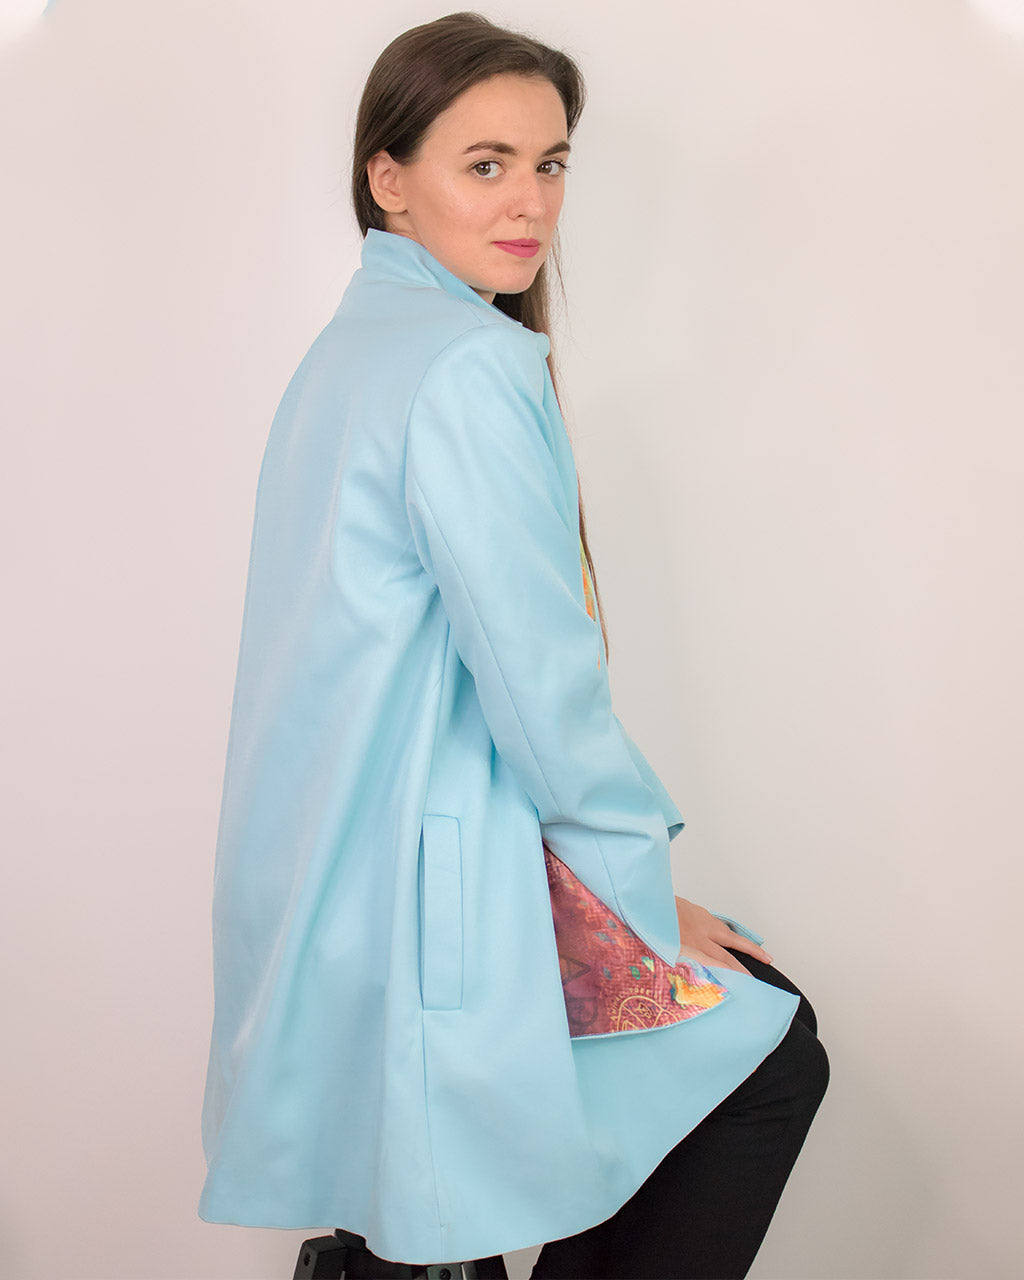 Baby blue a line oversized scarf spring gabardine coat Cardea by ADKN made in UK from sustainable recycled plastic bottles